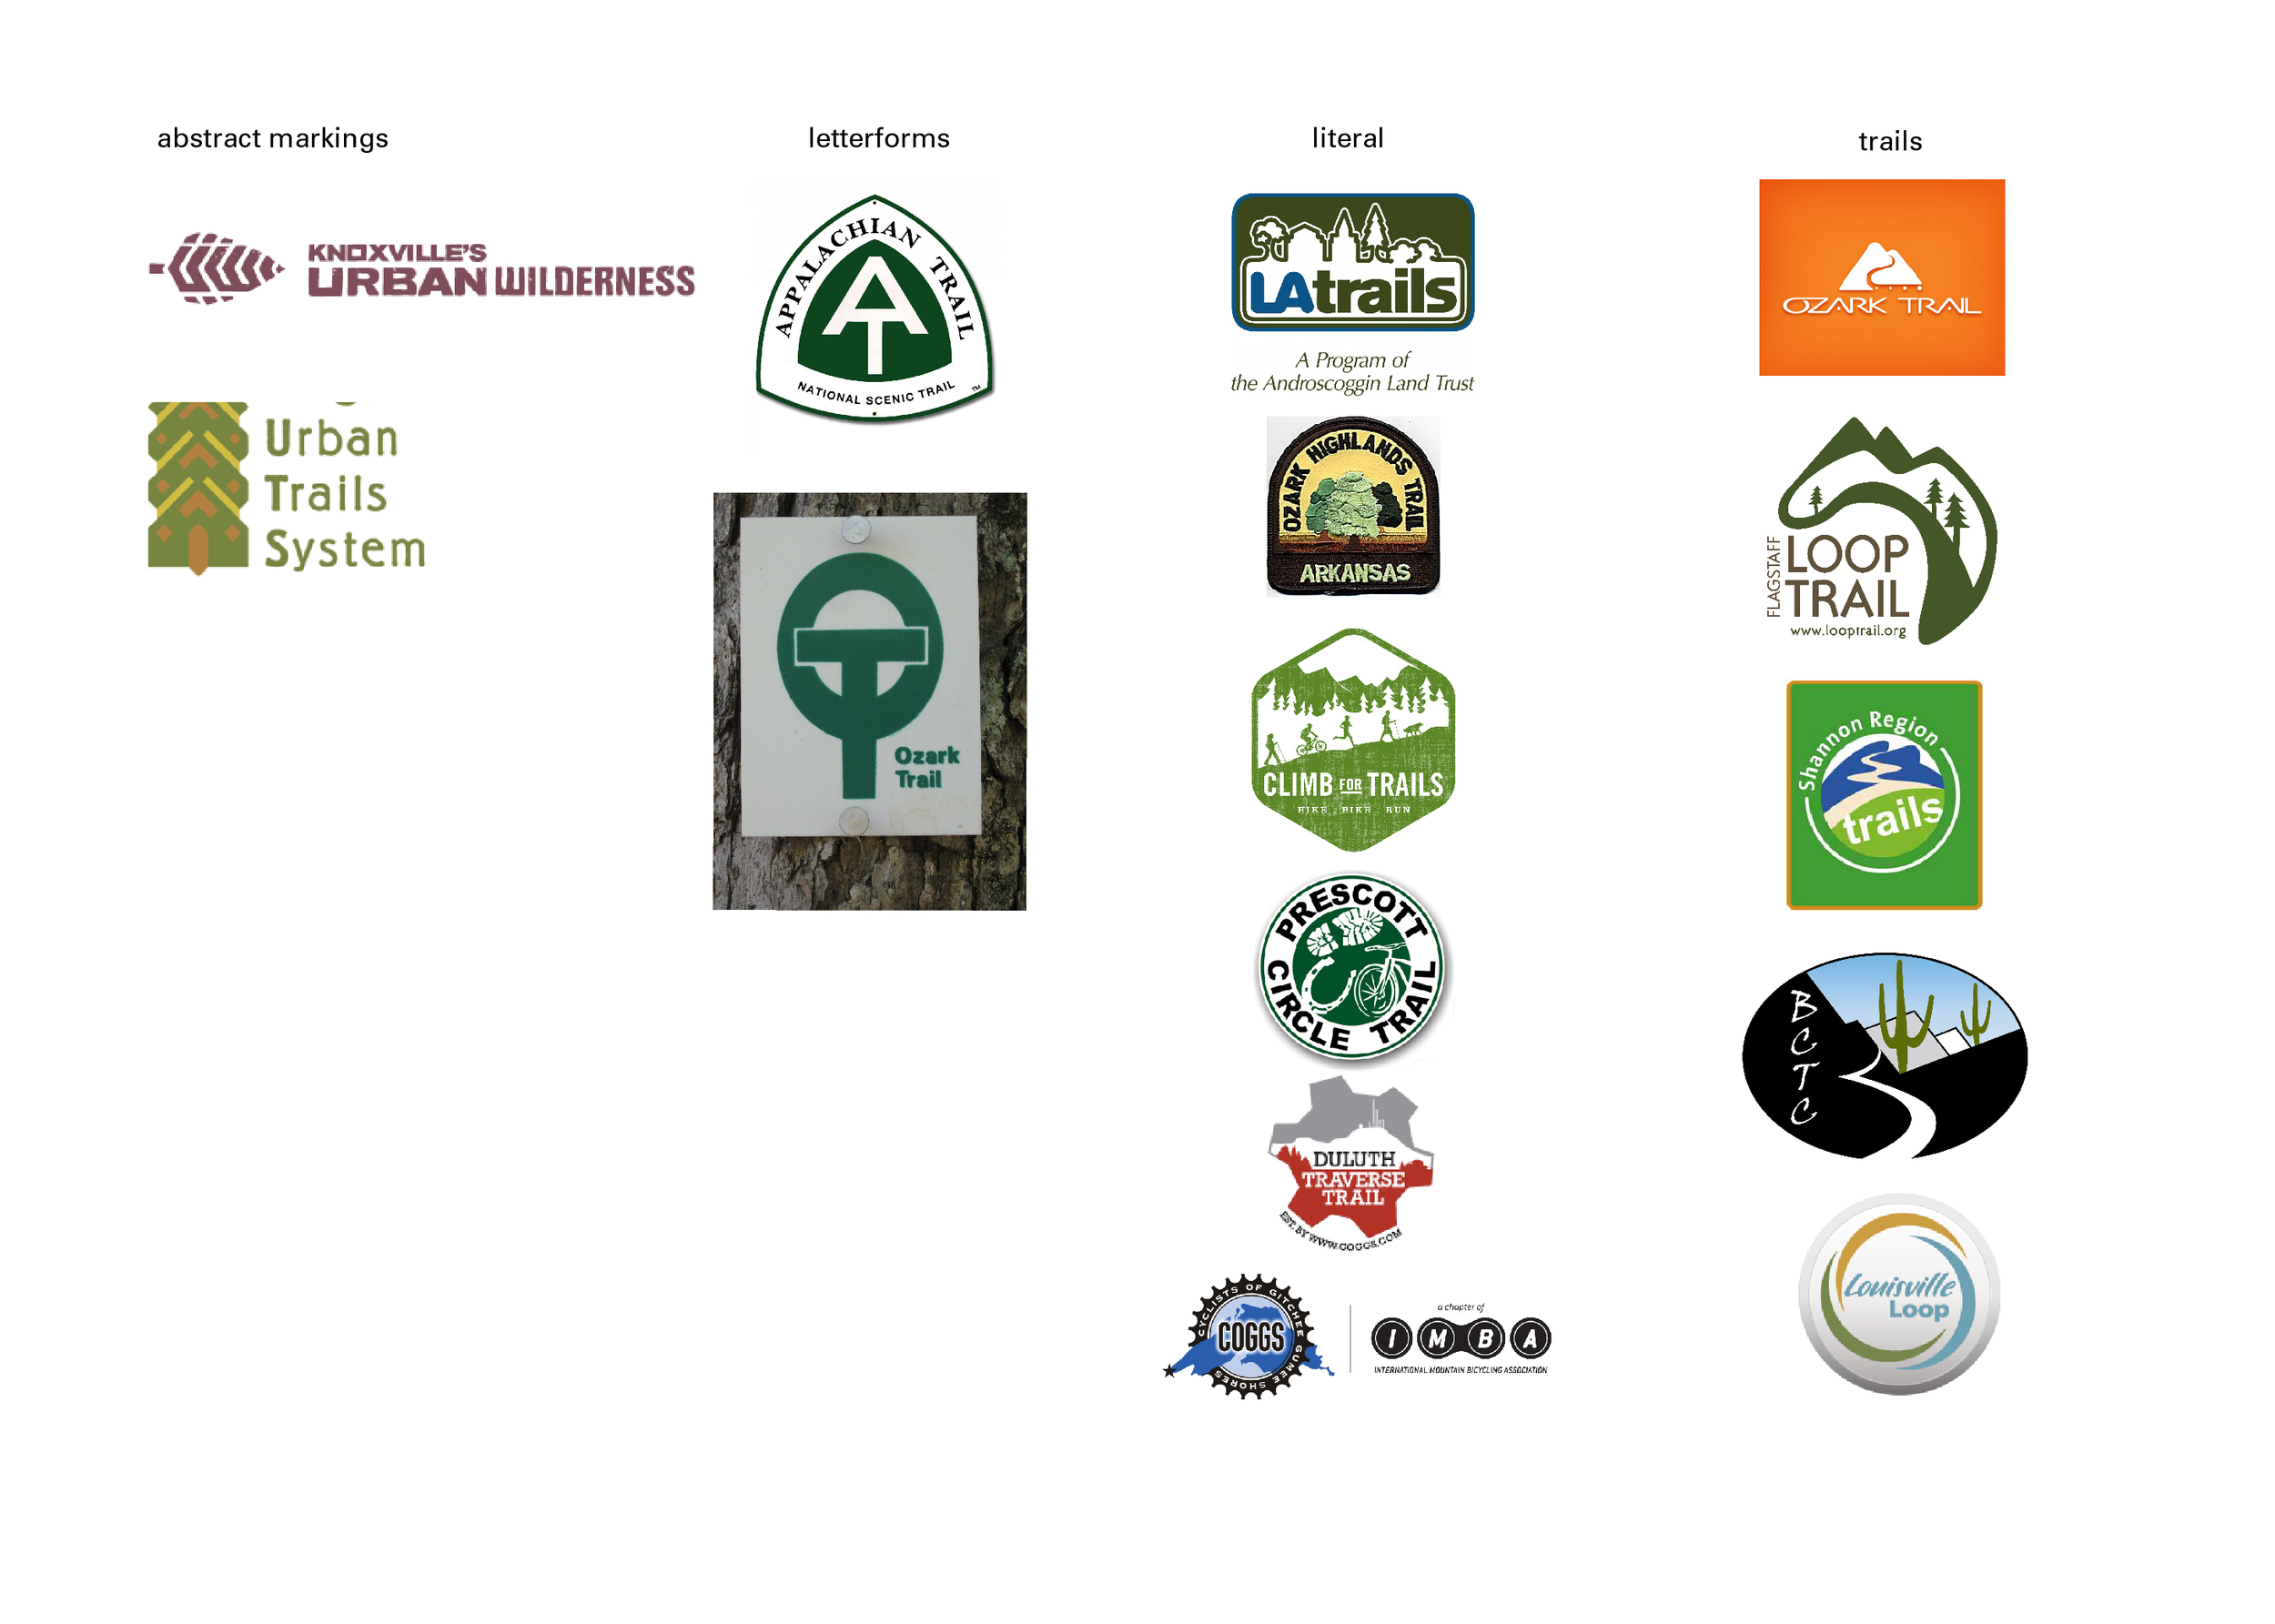 Research collected on existing bike trail logos